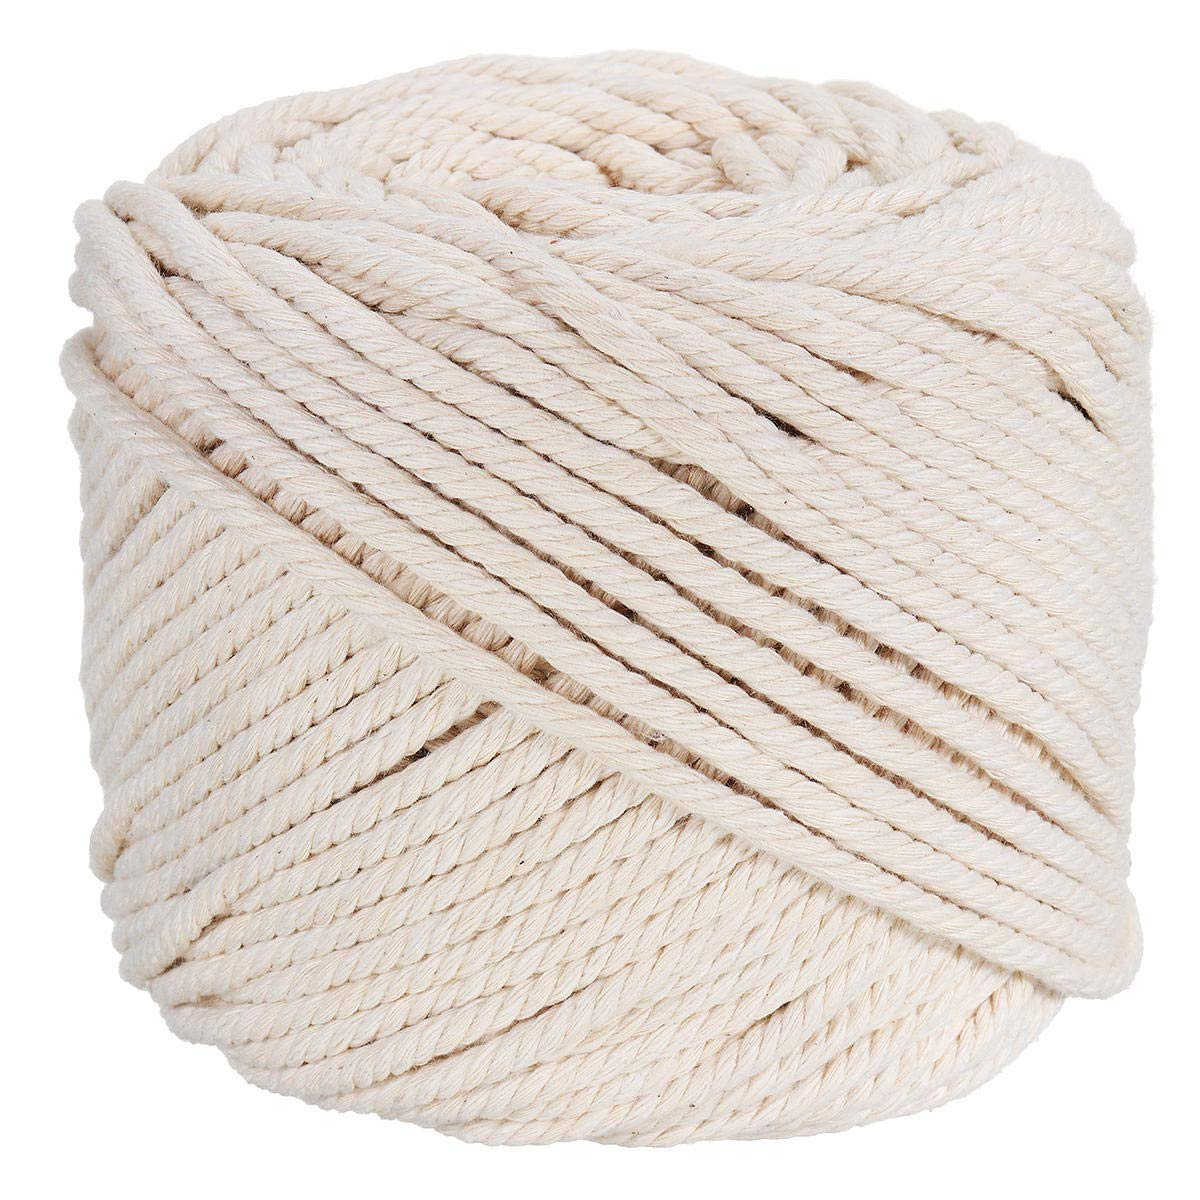 Ialwiyo Macrame Cord,No Industrial Treatment(Not Dyed),Natural Color Handmade Soft 4-Strand Cotton Cord Rope for Macrame,Wall Hanging,Plant Hanger,DIY Craft Making,Knitting (3mm x 100m(About 109 yd)